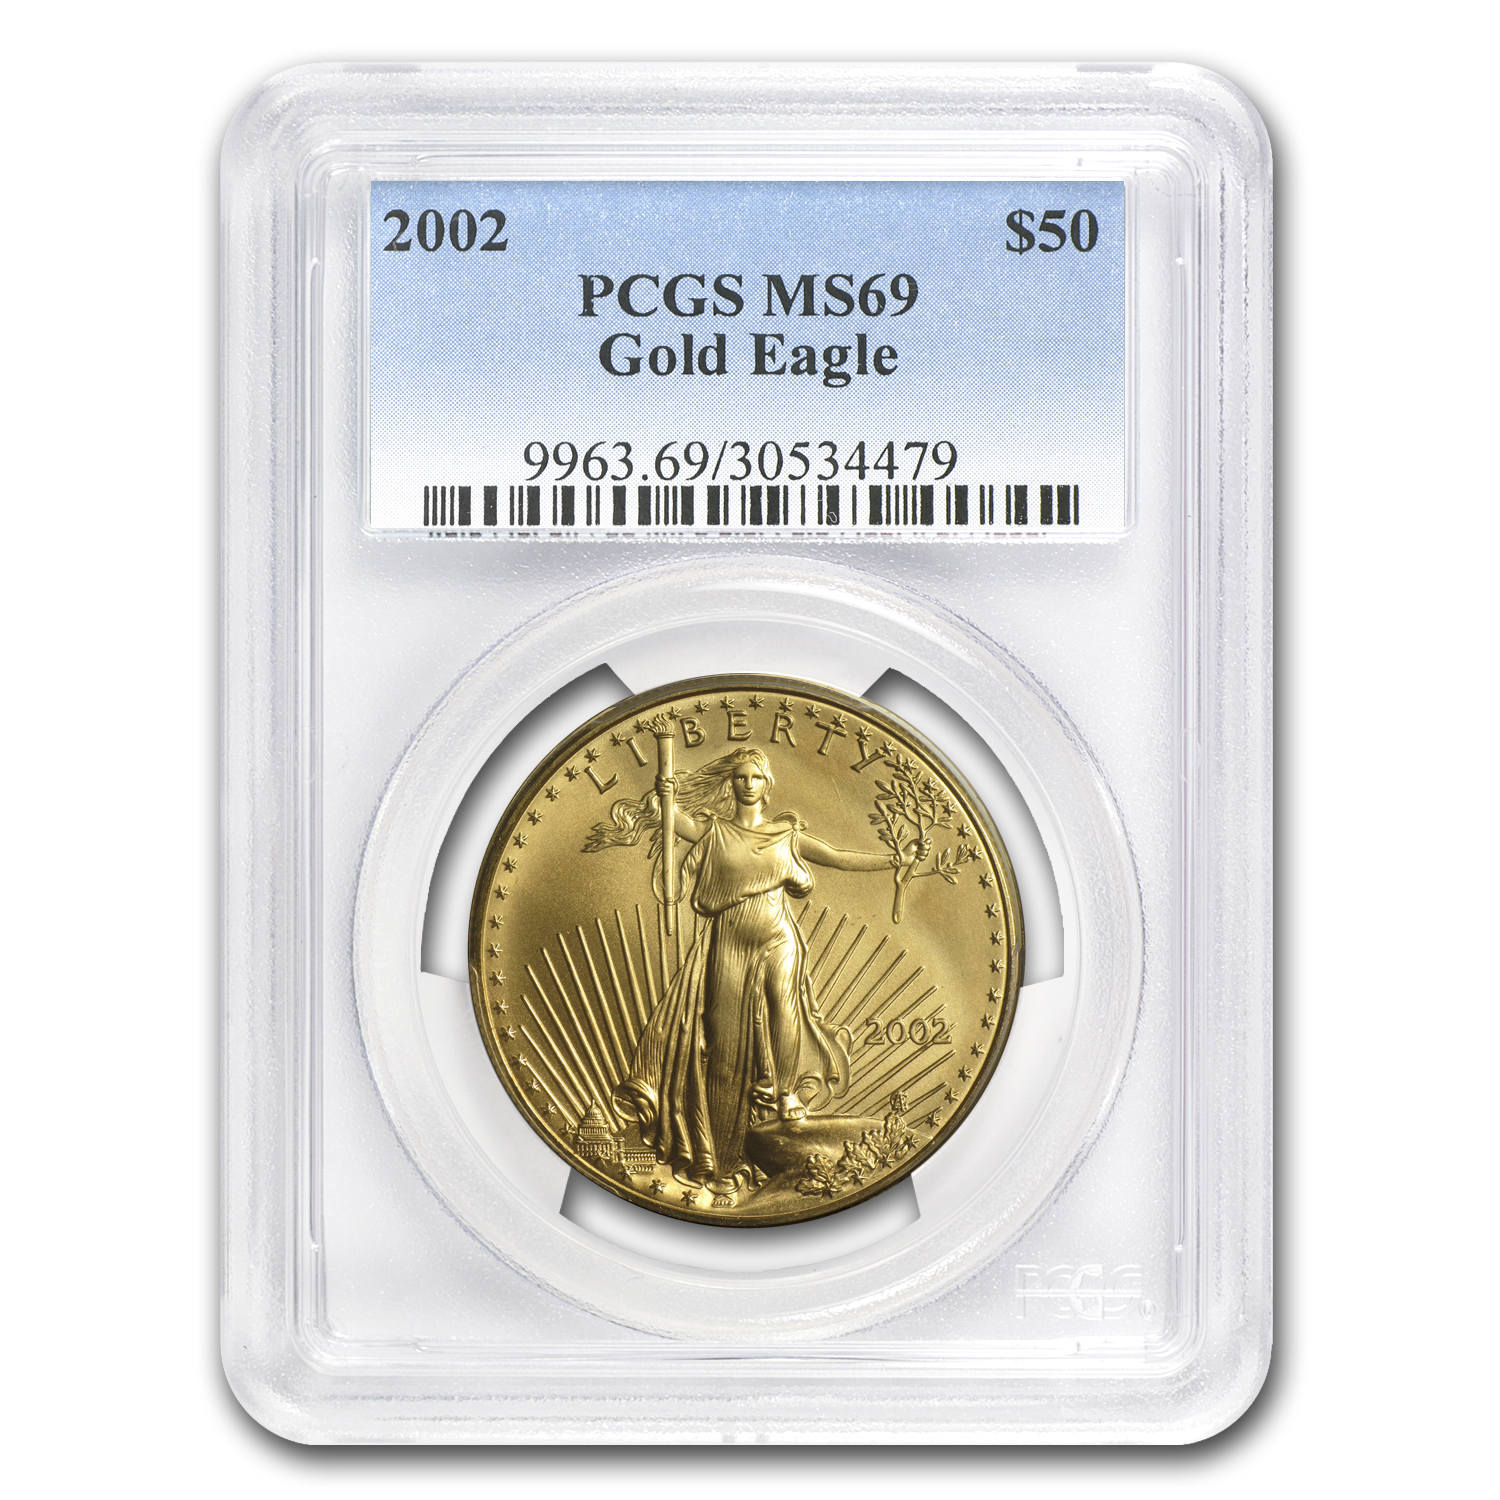 2002 1 oz Gold American Eagle MS-69 PCGS